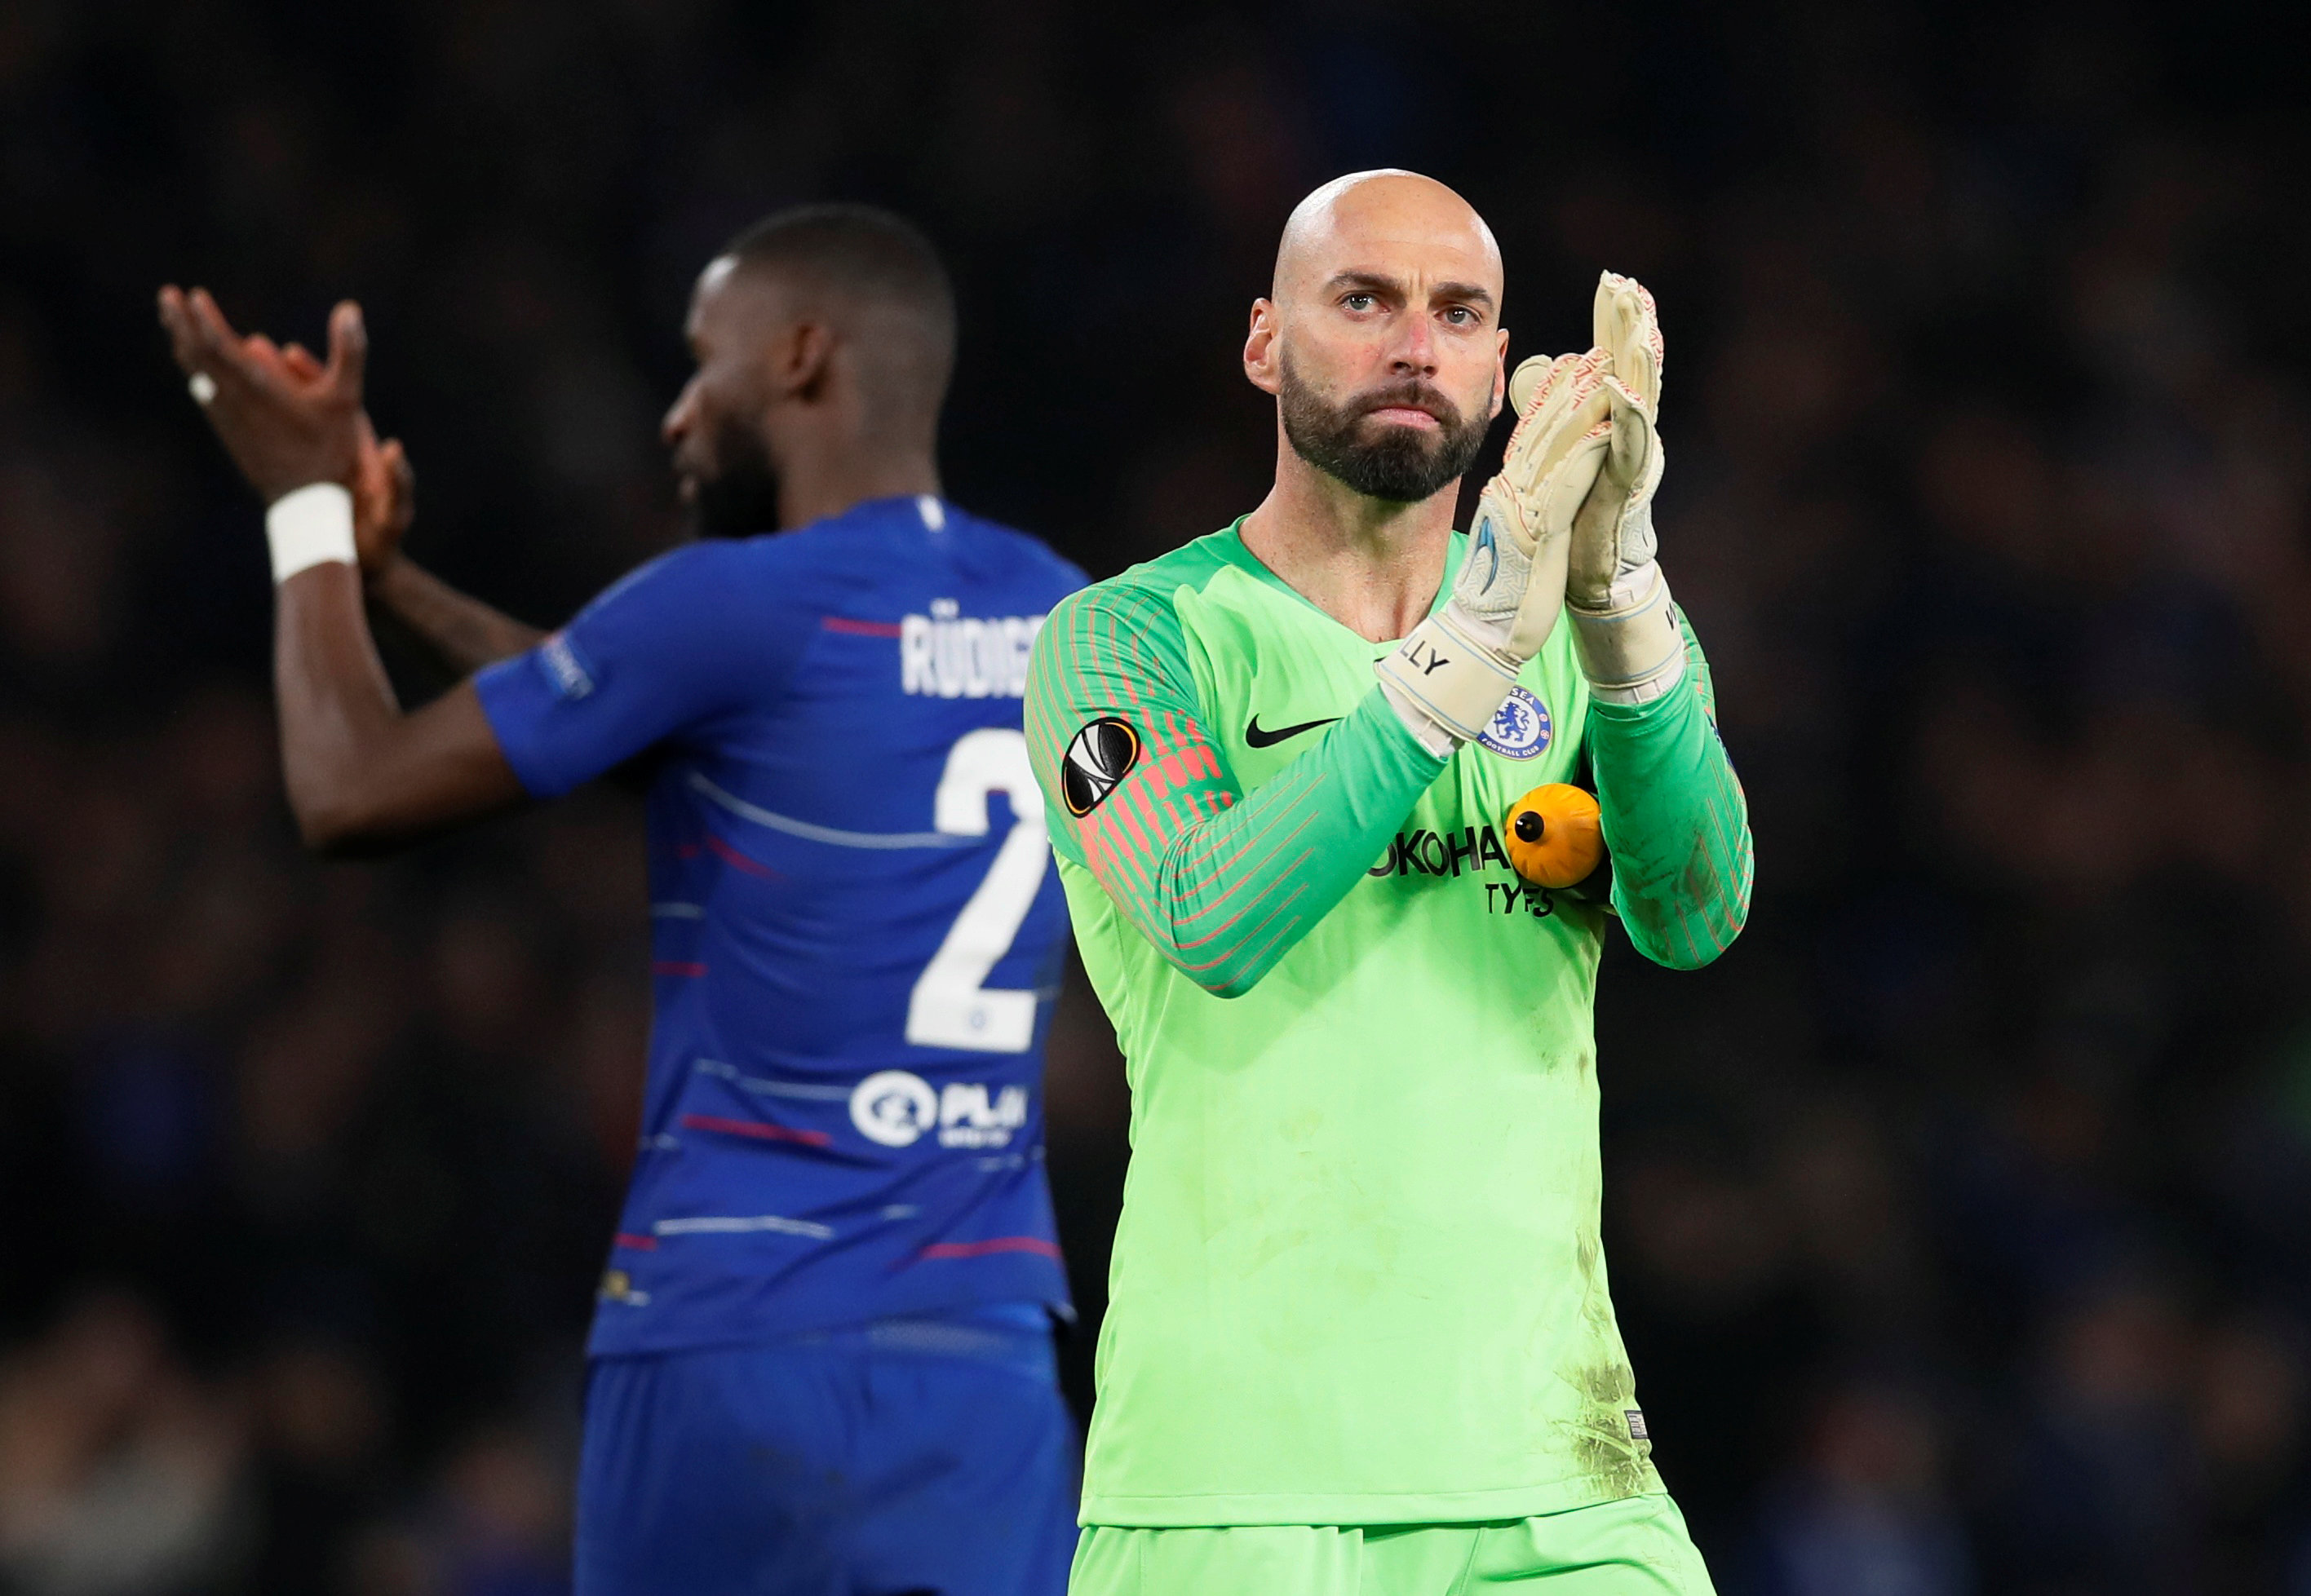 Chelsea FC first team goalkeeper 2019: Willy Caballero